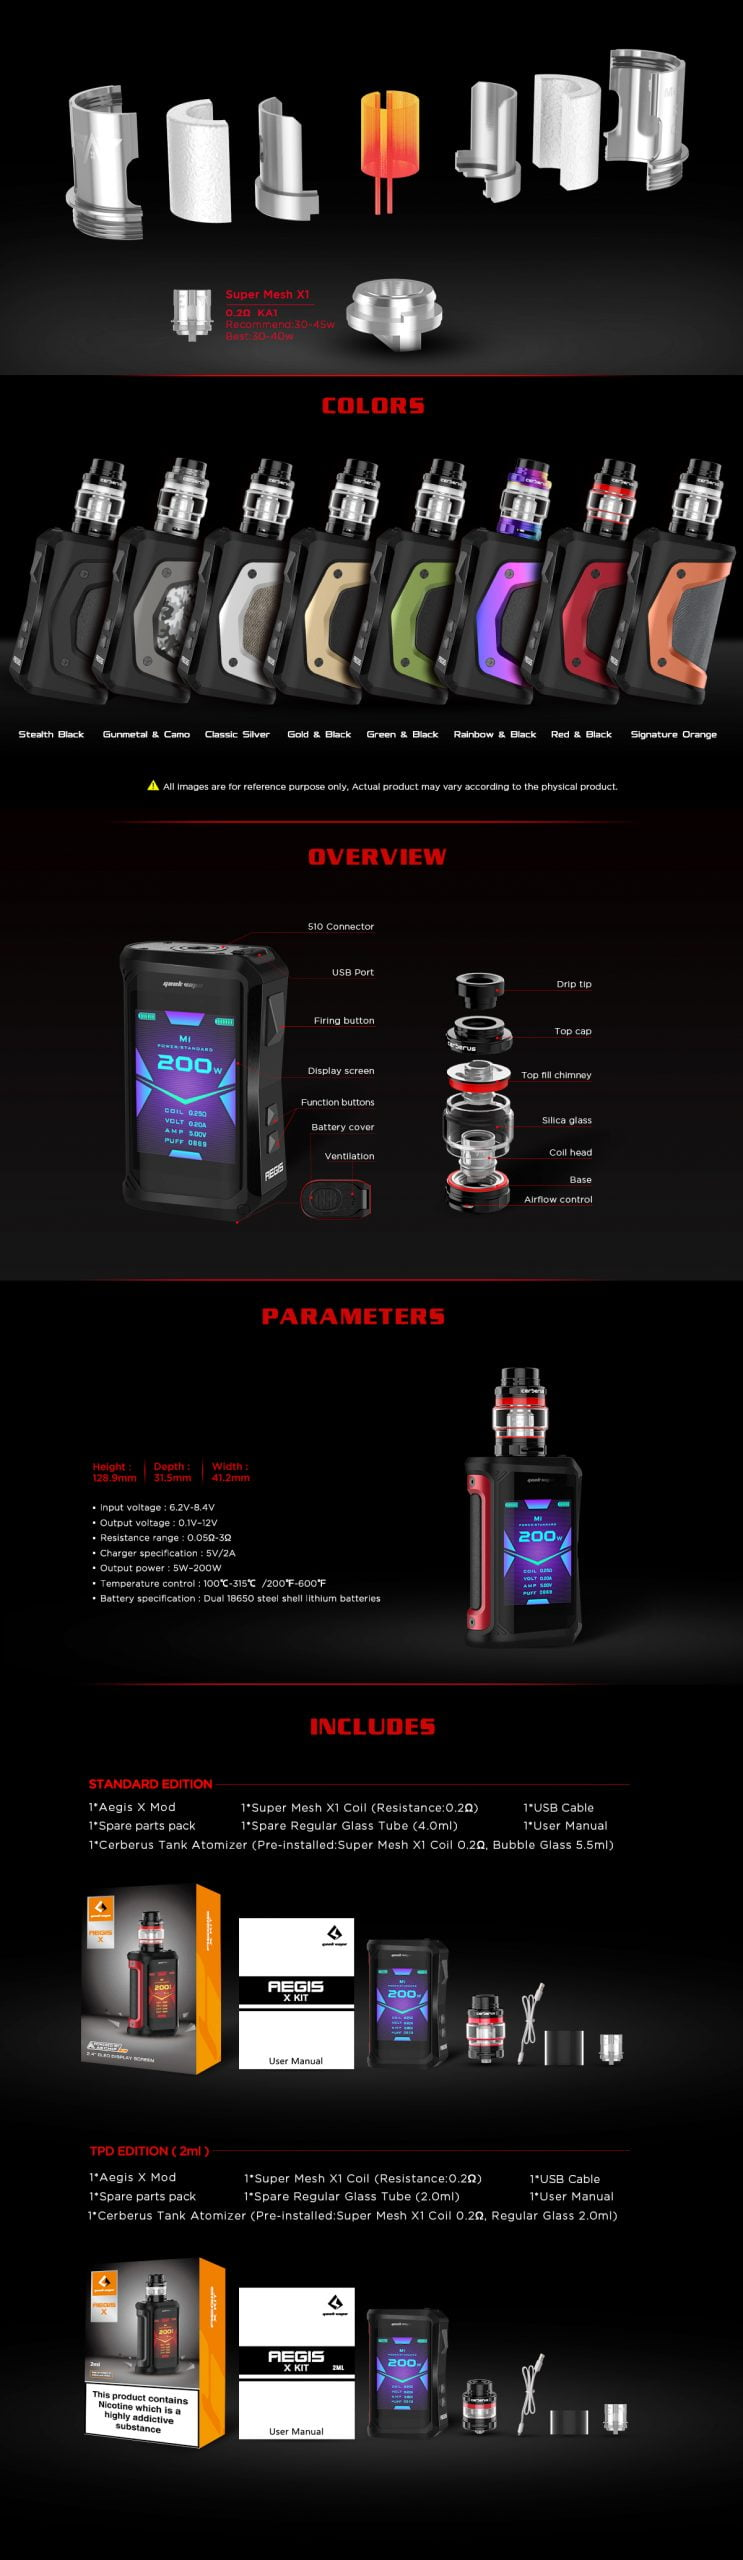 Aegis X Kit Overview